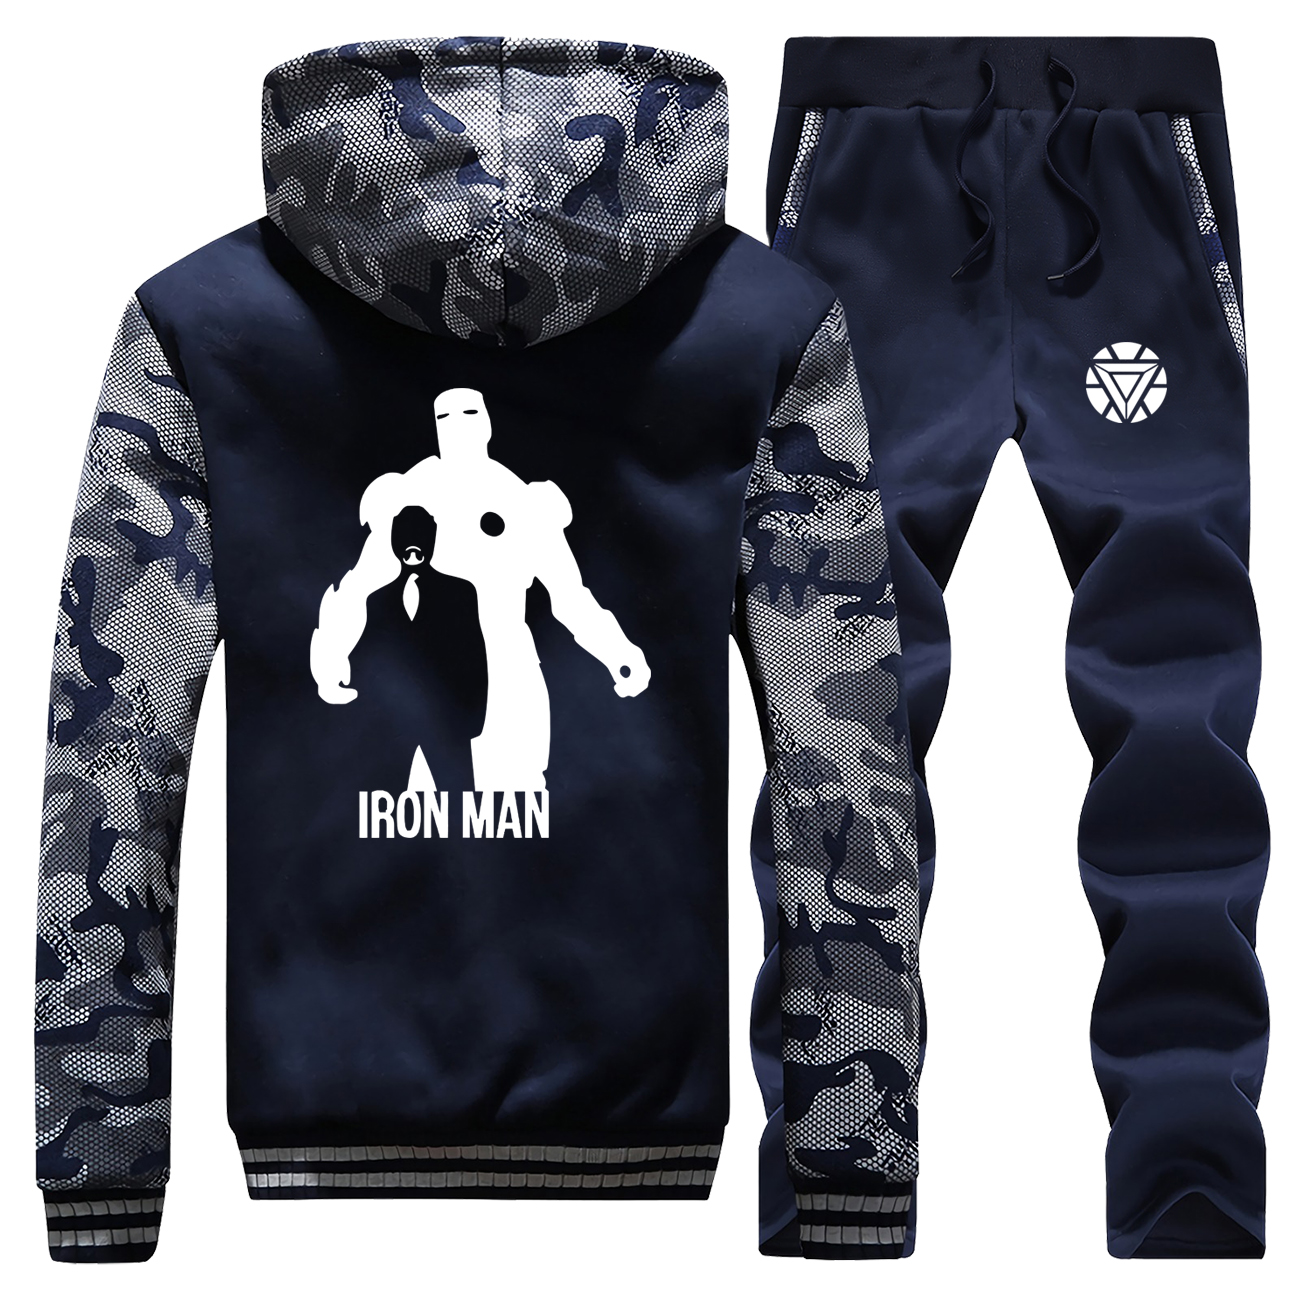 The Avengers Iron Man Tracksuit Winter Men Set Thick Fleece Jackets + Pants 2 Pieces Sets Male Warm Hoodies Suit Mens Sportswear